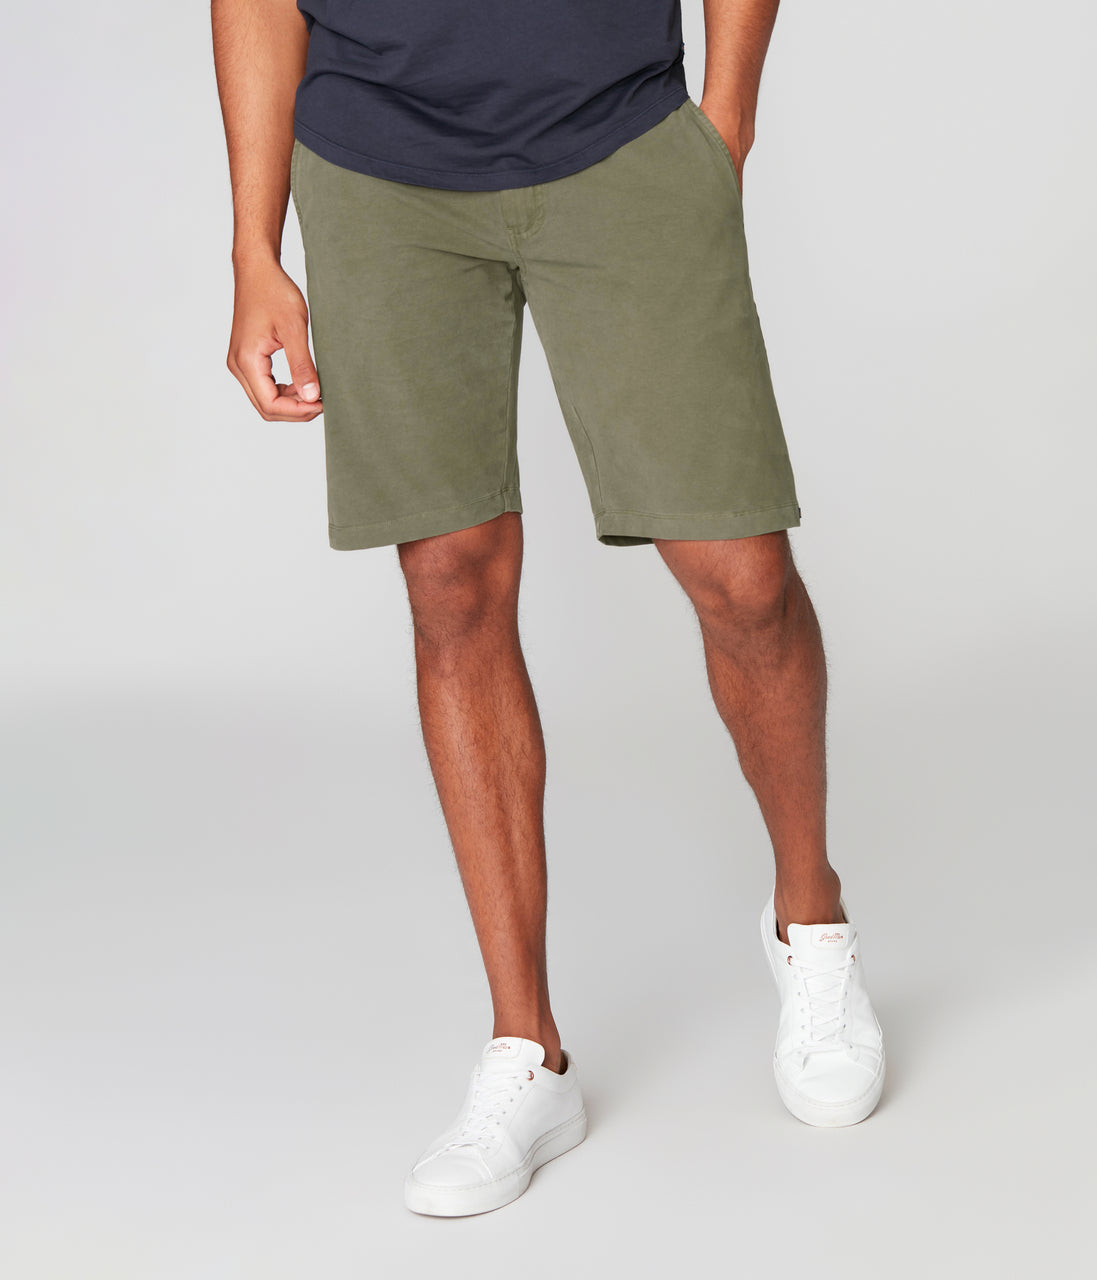 Flex Pro Jersey Tulum Trunk - Military Green - Good Man Brand - Flex Pro Jersey Tulum Trunk - Military Green